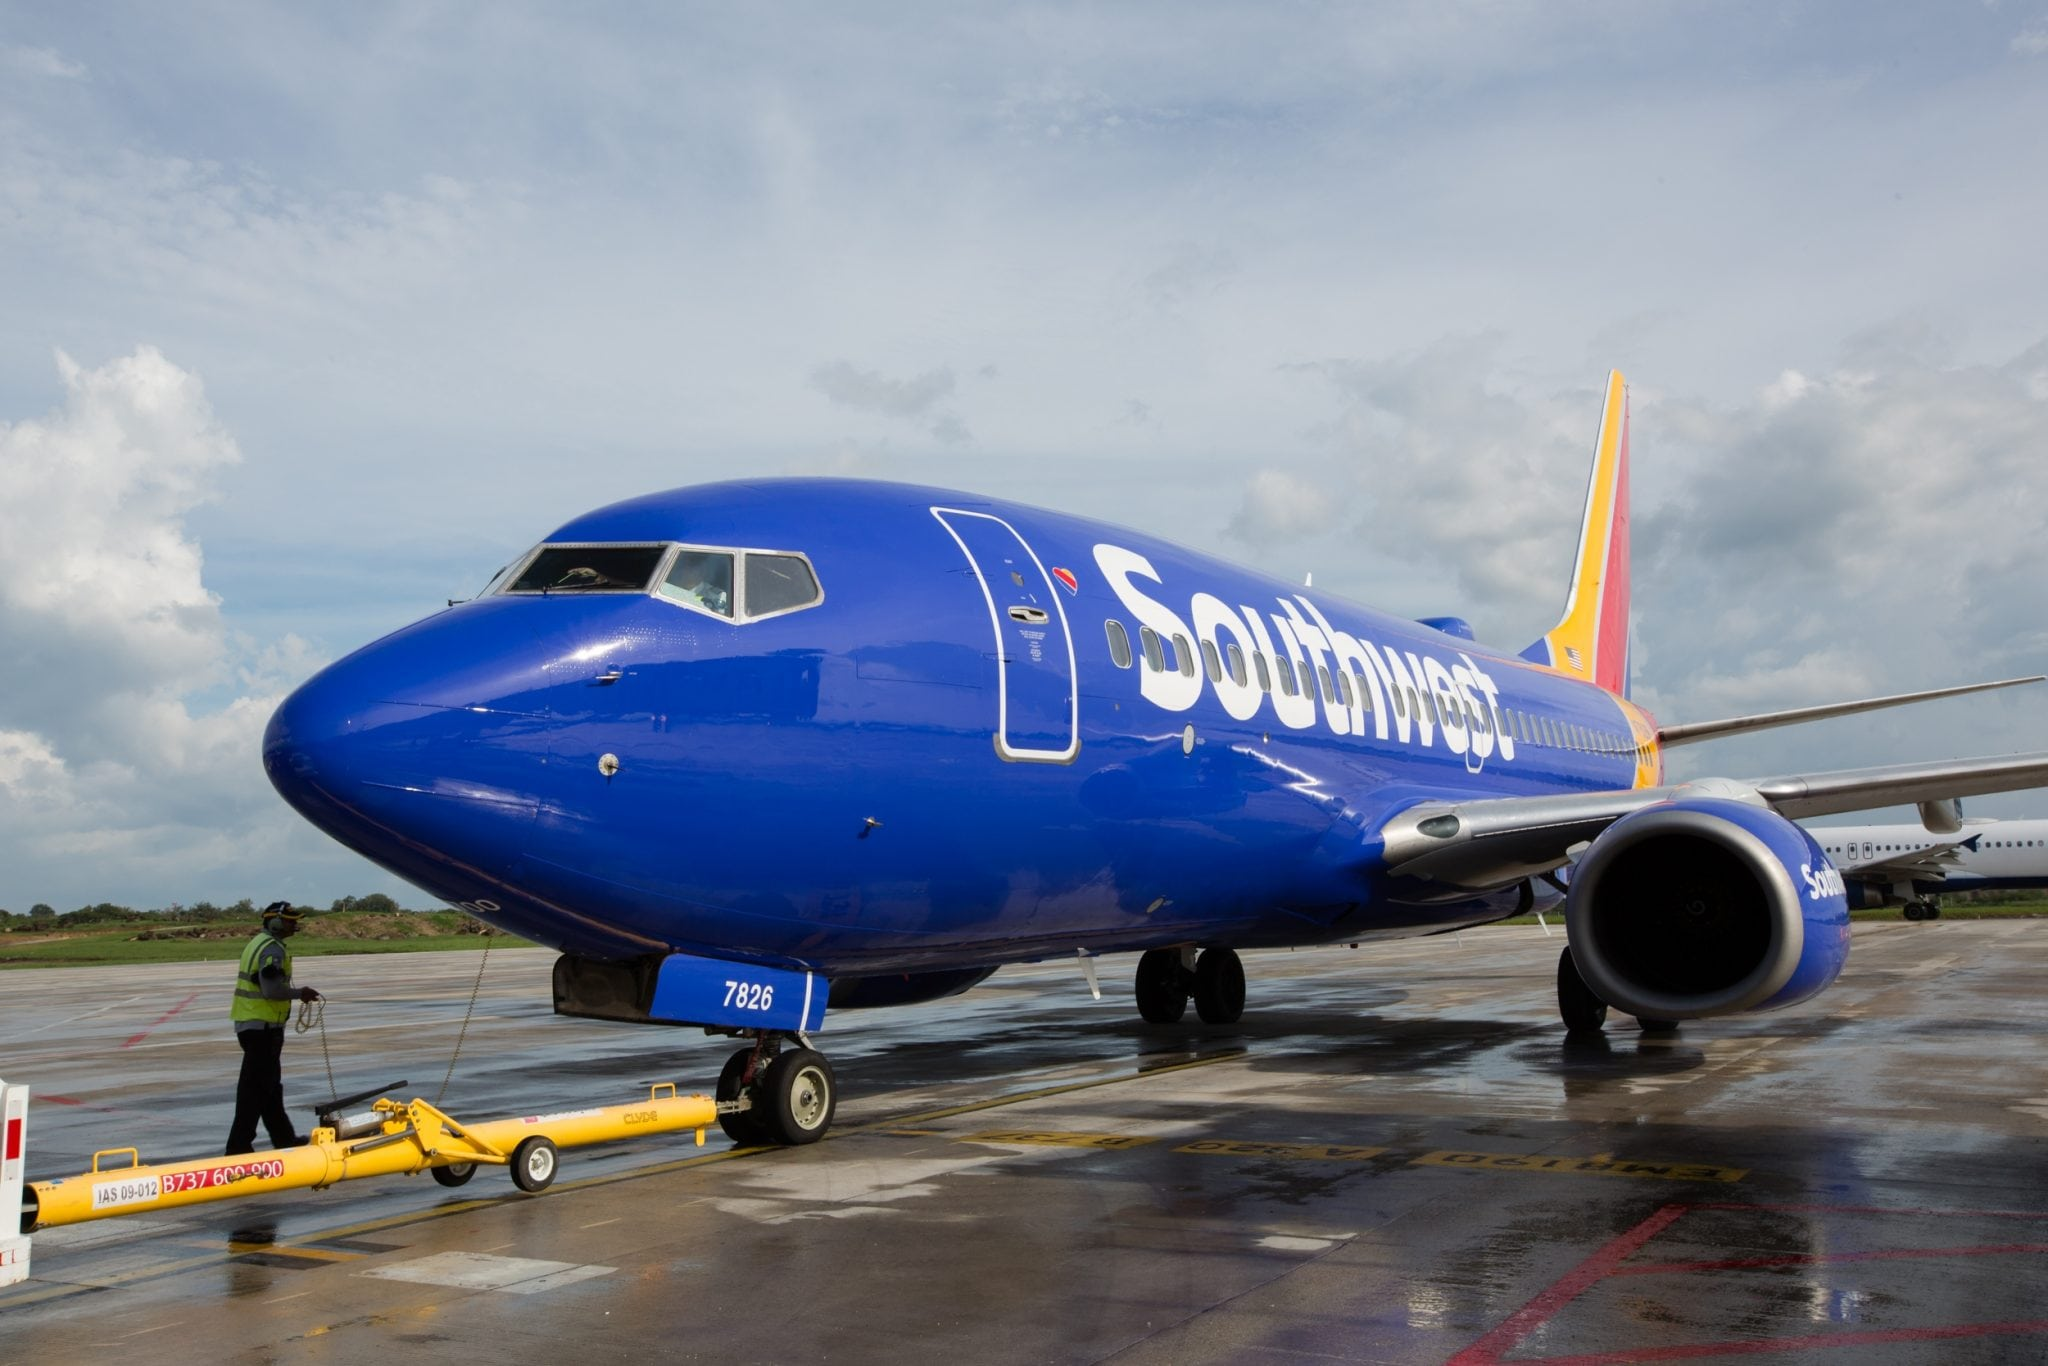 Southwest Airlines has seen record profits as a result of lower fuel prices and fleet modernization efforts